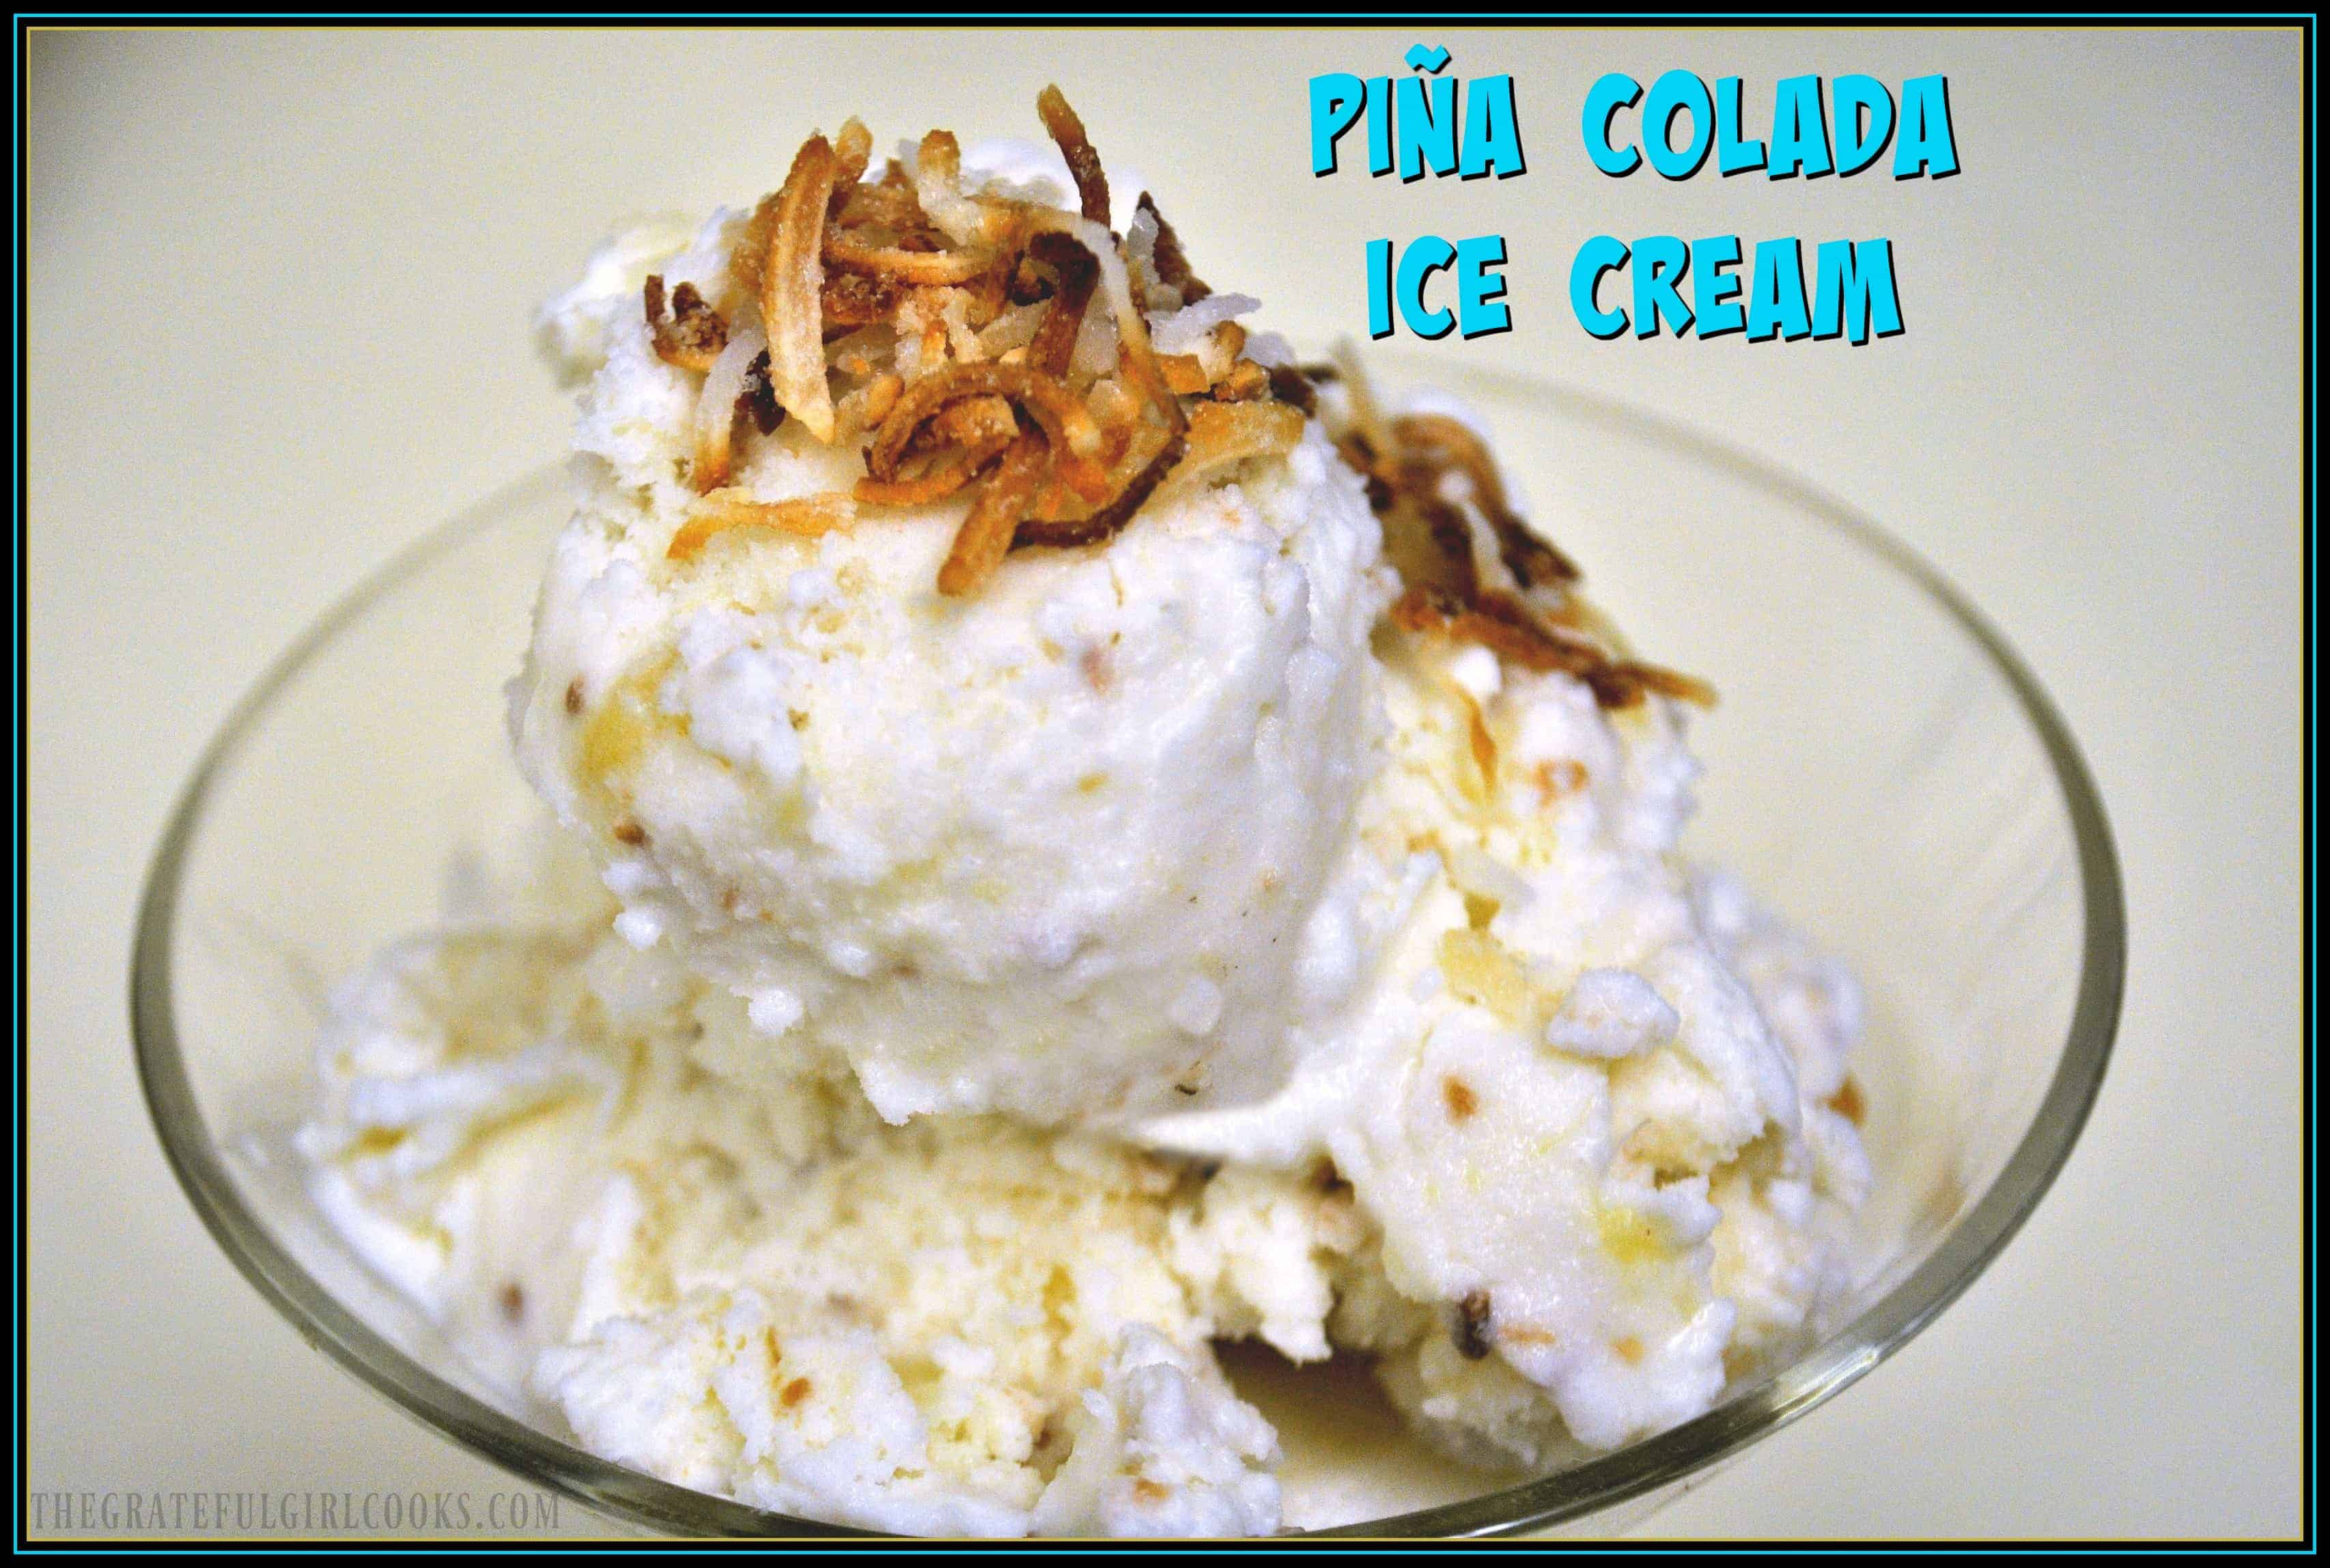 Piña Colada Ice Cream / The Grateful Girl Cooks!  Enjoy a taste of the tropics with this simple, delicious homemade ice cream!